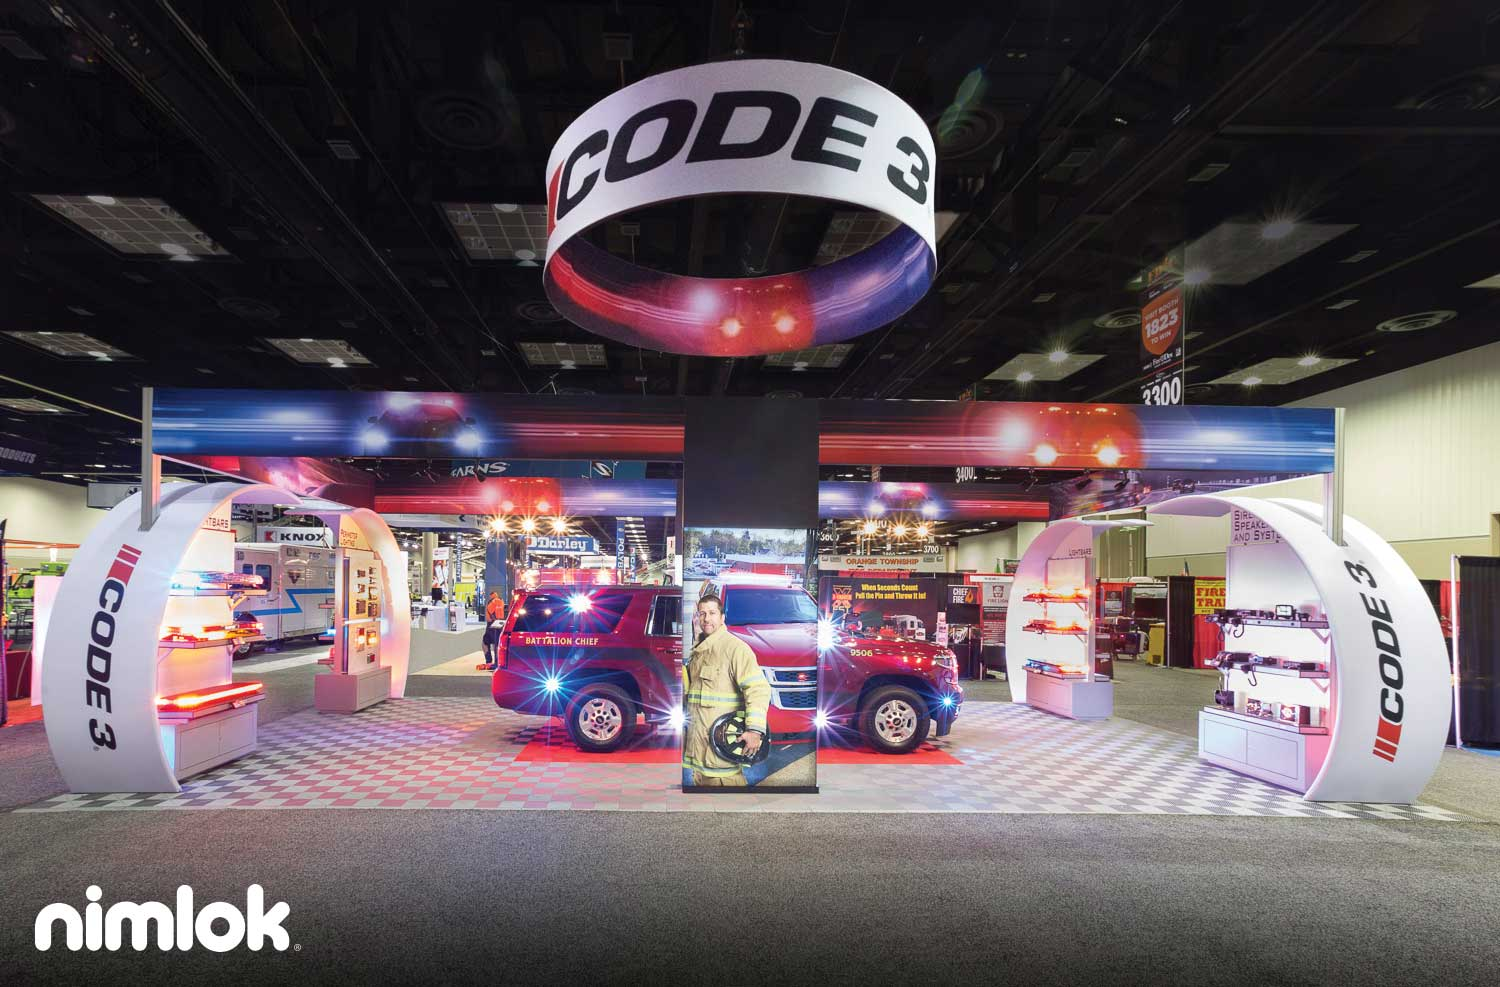 Trade Show Booth Hs Code : Learn how to design a killer trade show booth nimlok